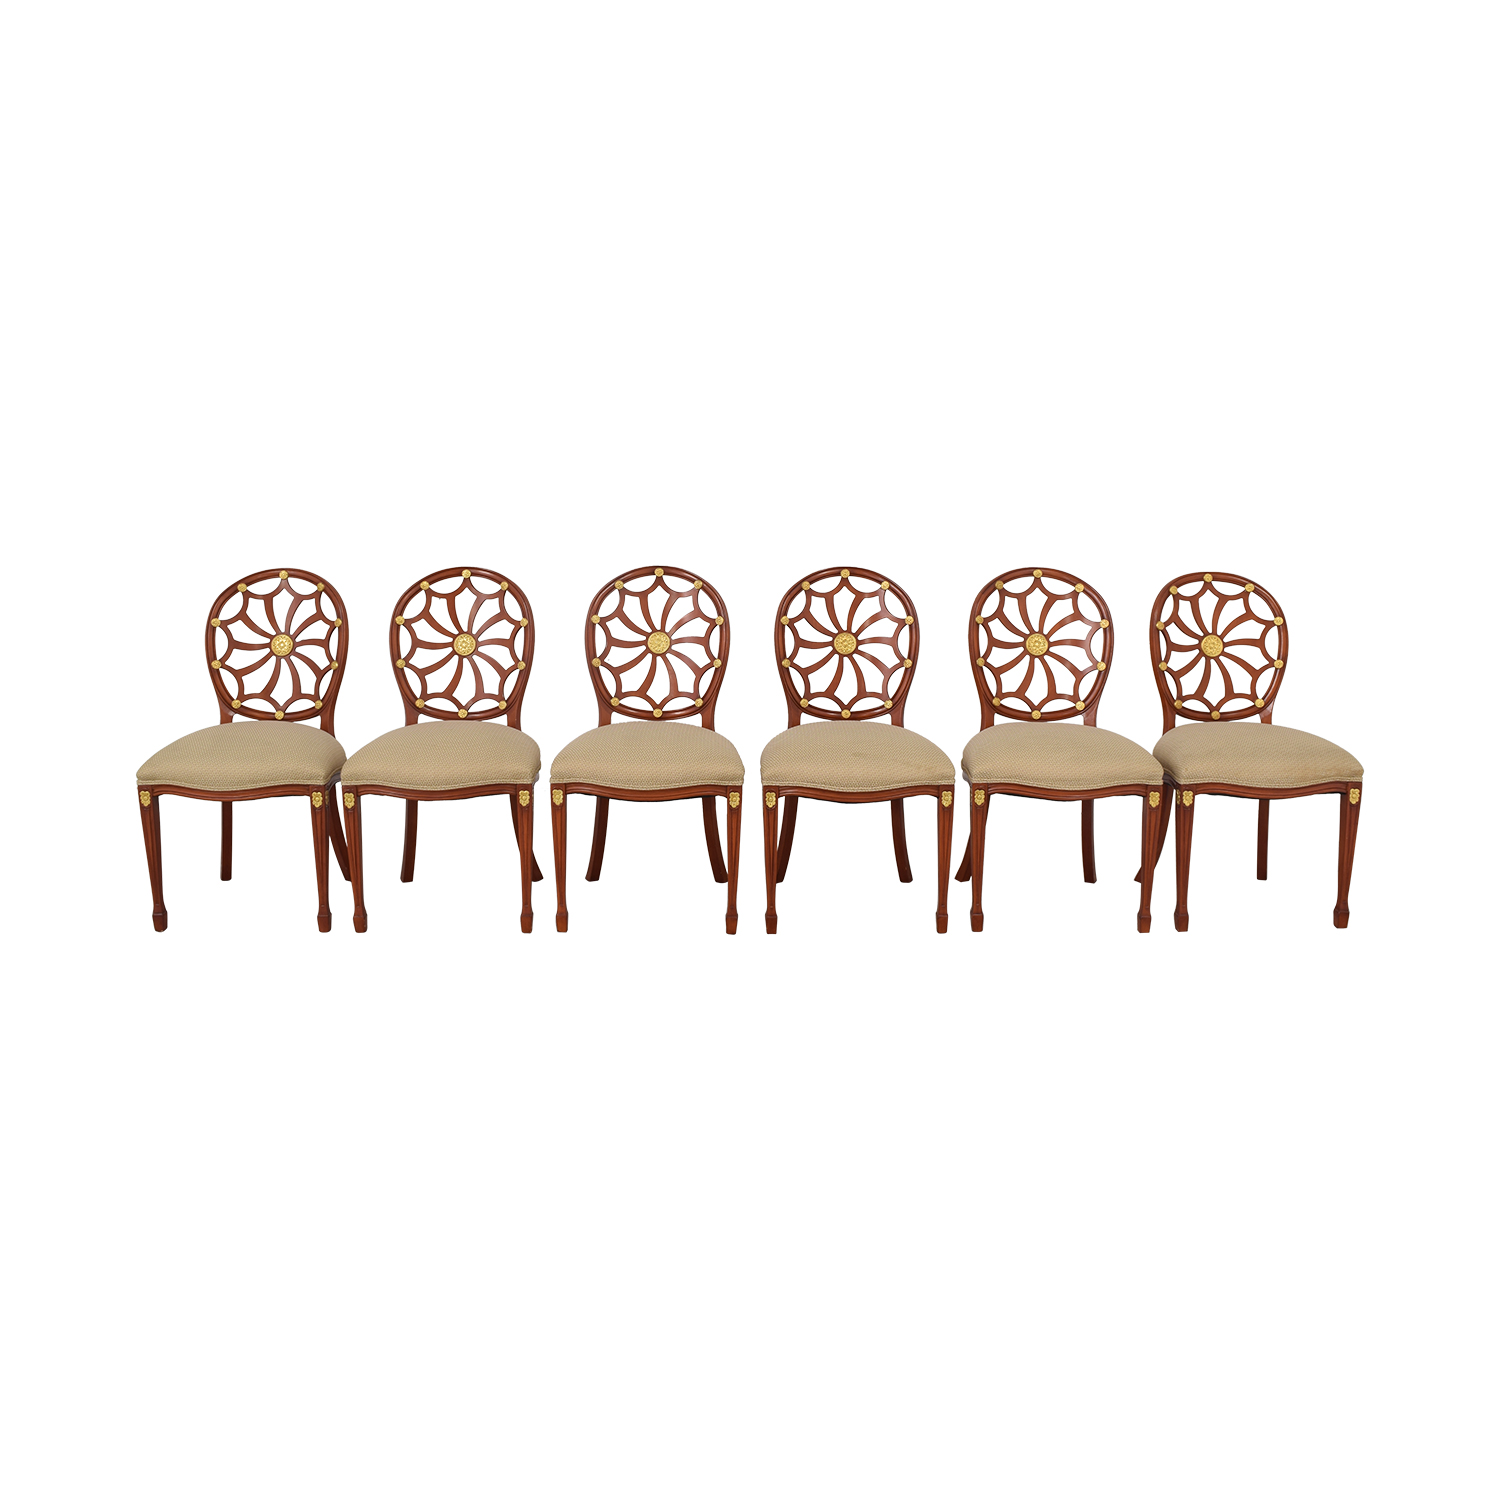 Grange Dining Room Chairs / Dining Chairs